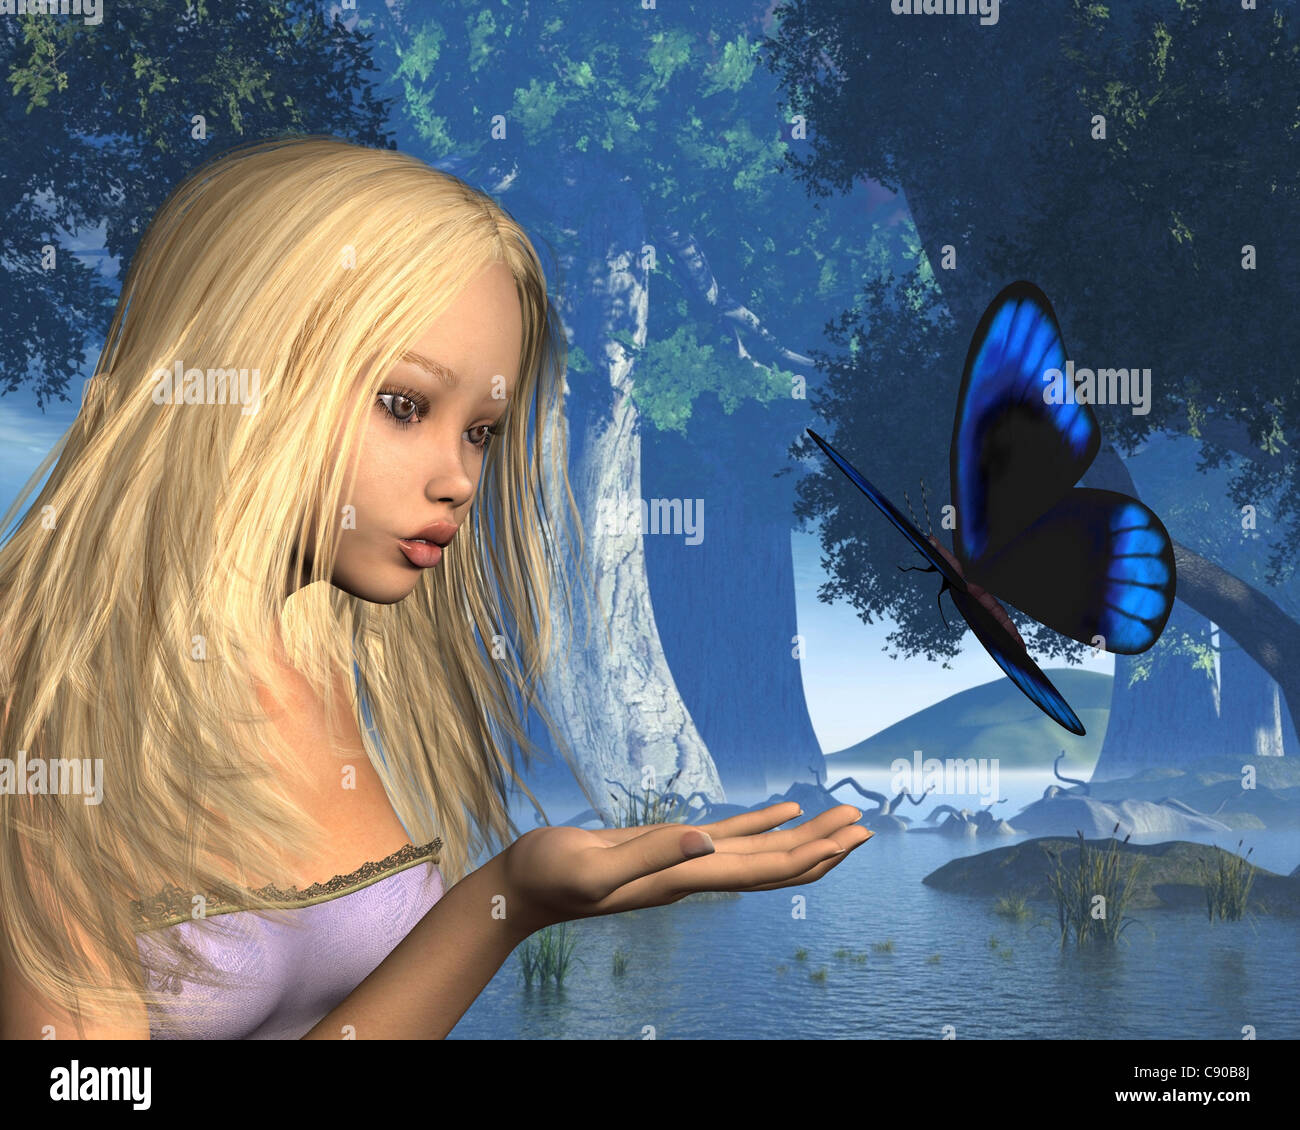 Blue Butterfly and Water Nymph in Peaceful Woodland - Stock Image